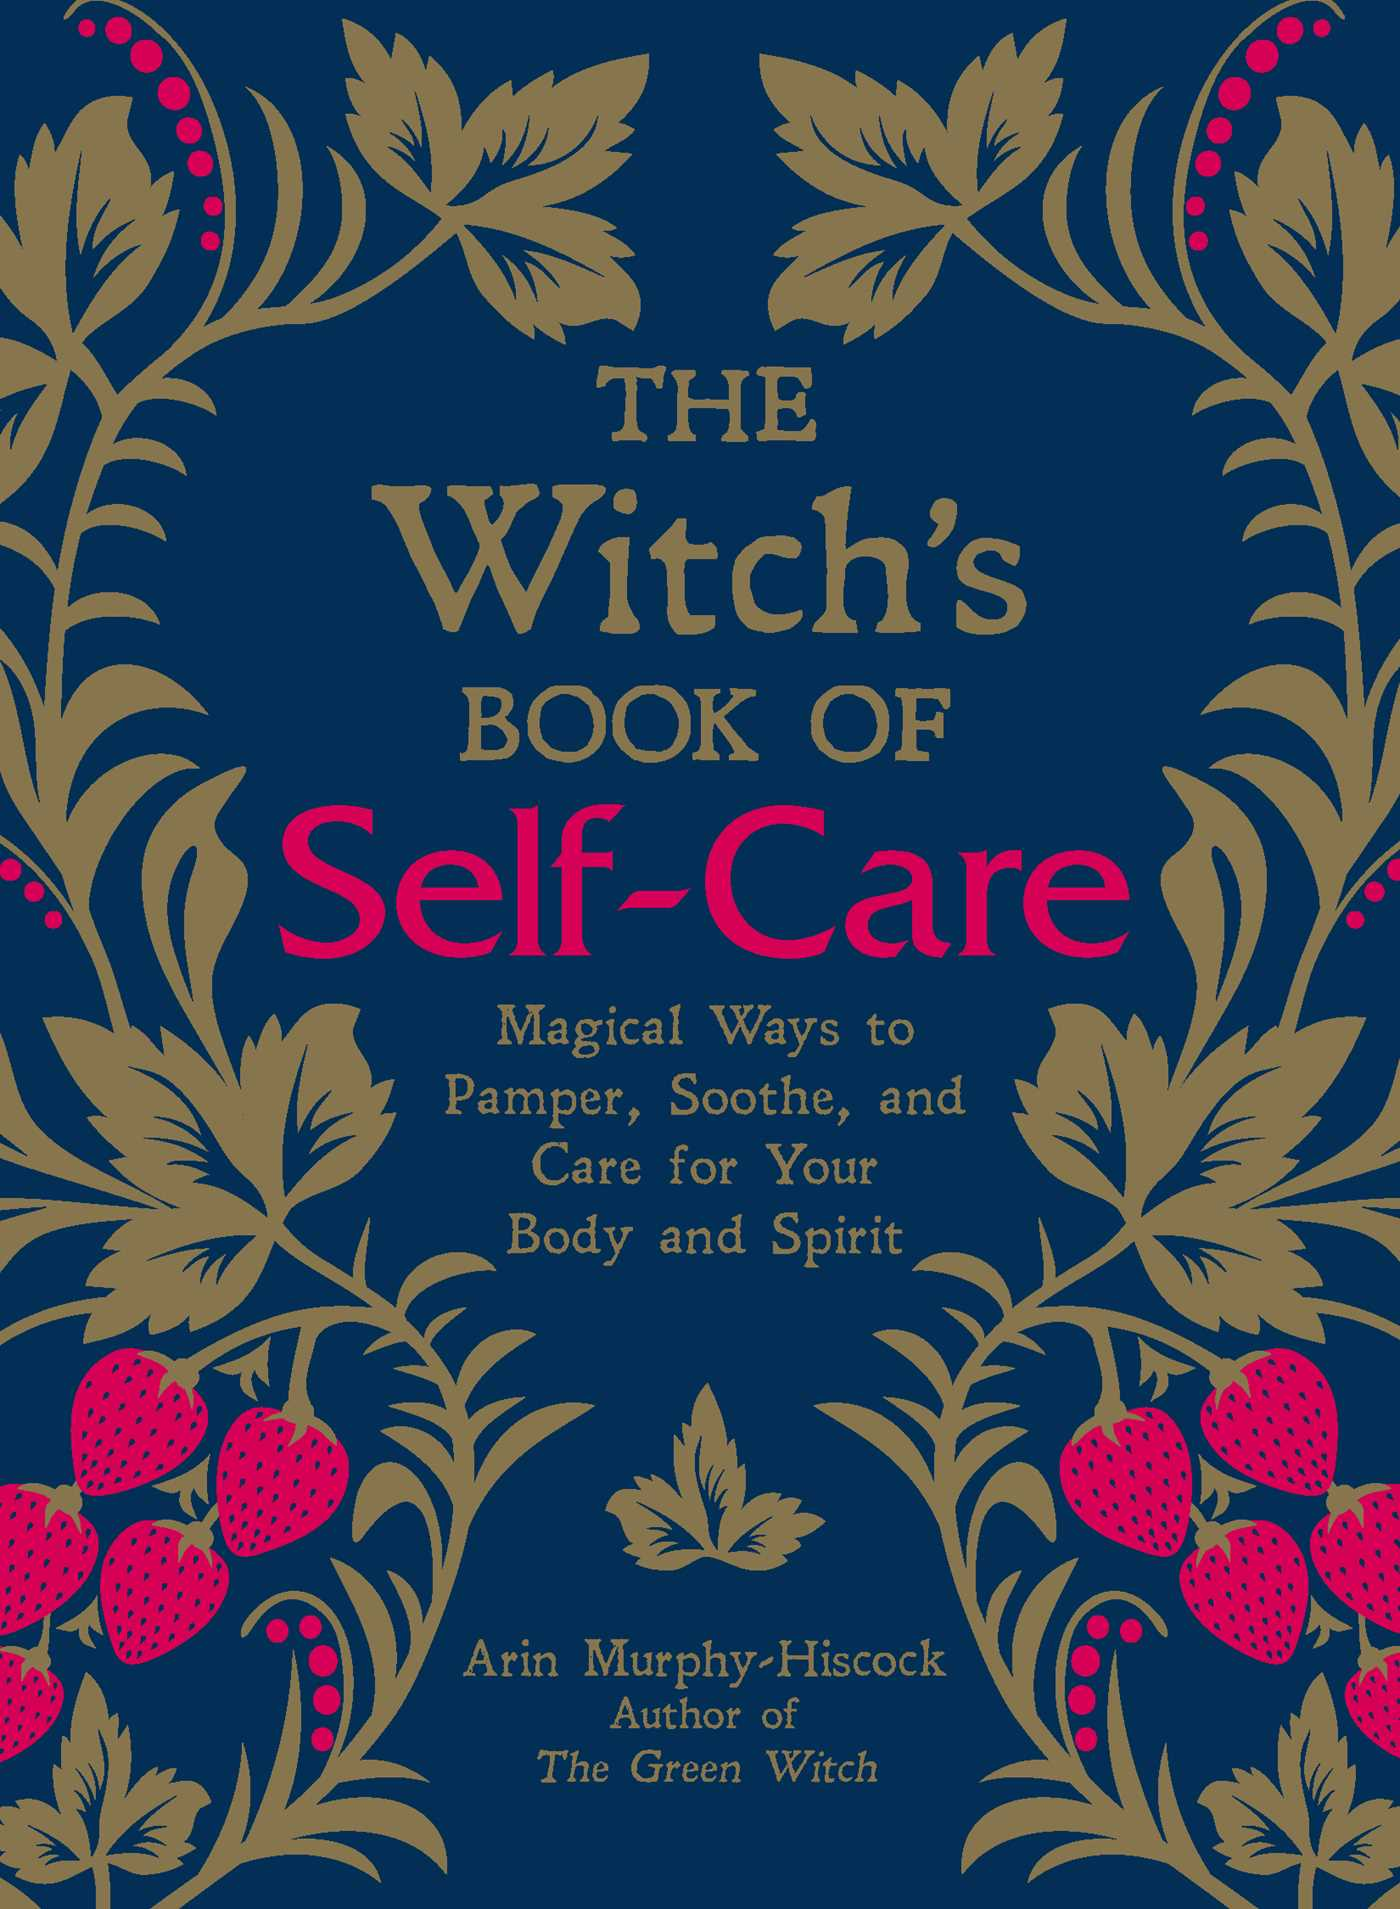 The Witch's Book of Self-Care : Magical Ways to Pamper, Soothe, and Care for Your Body and Spirit | Faith & Spirituality